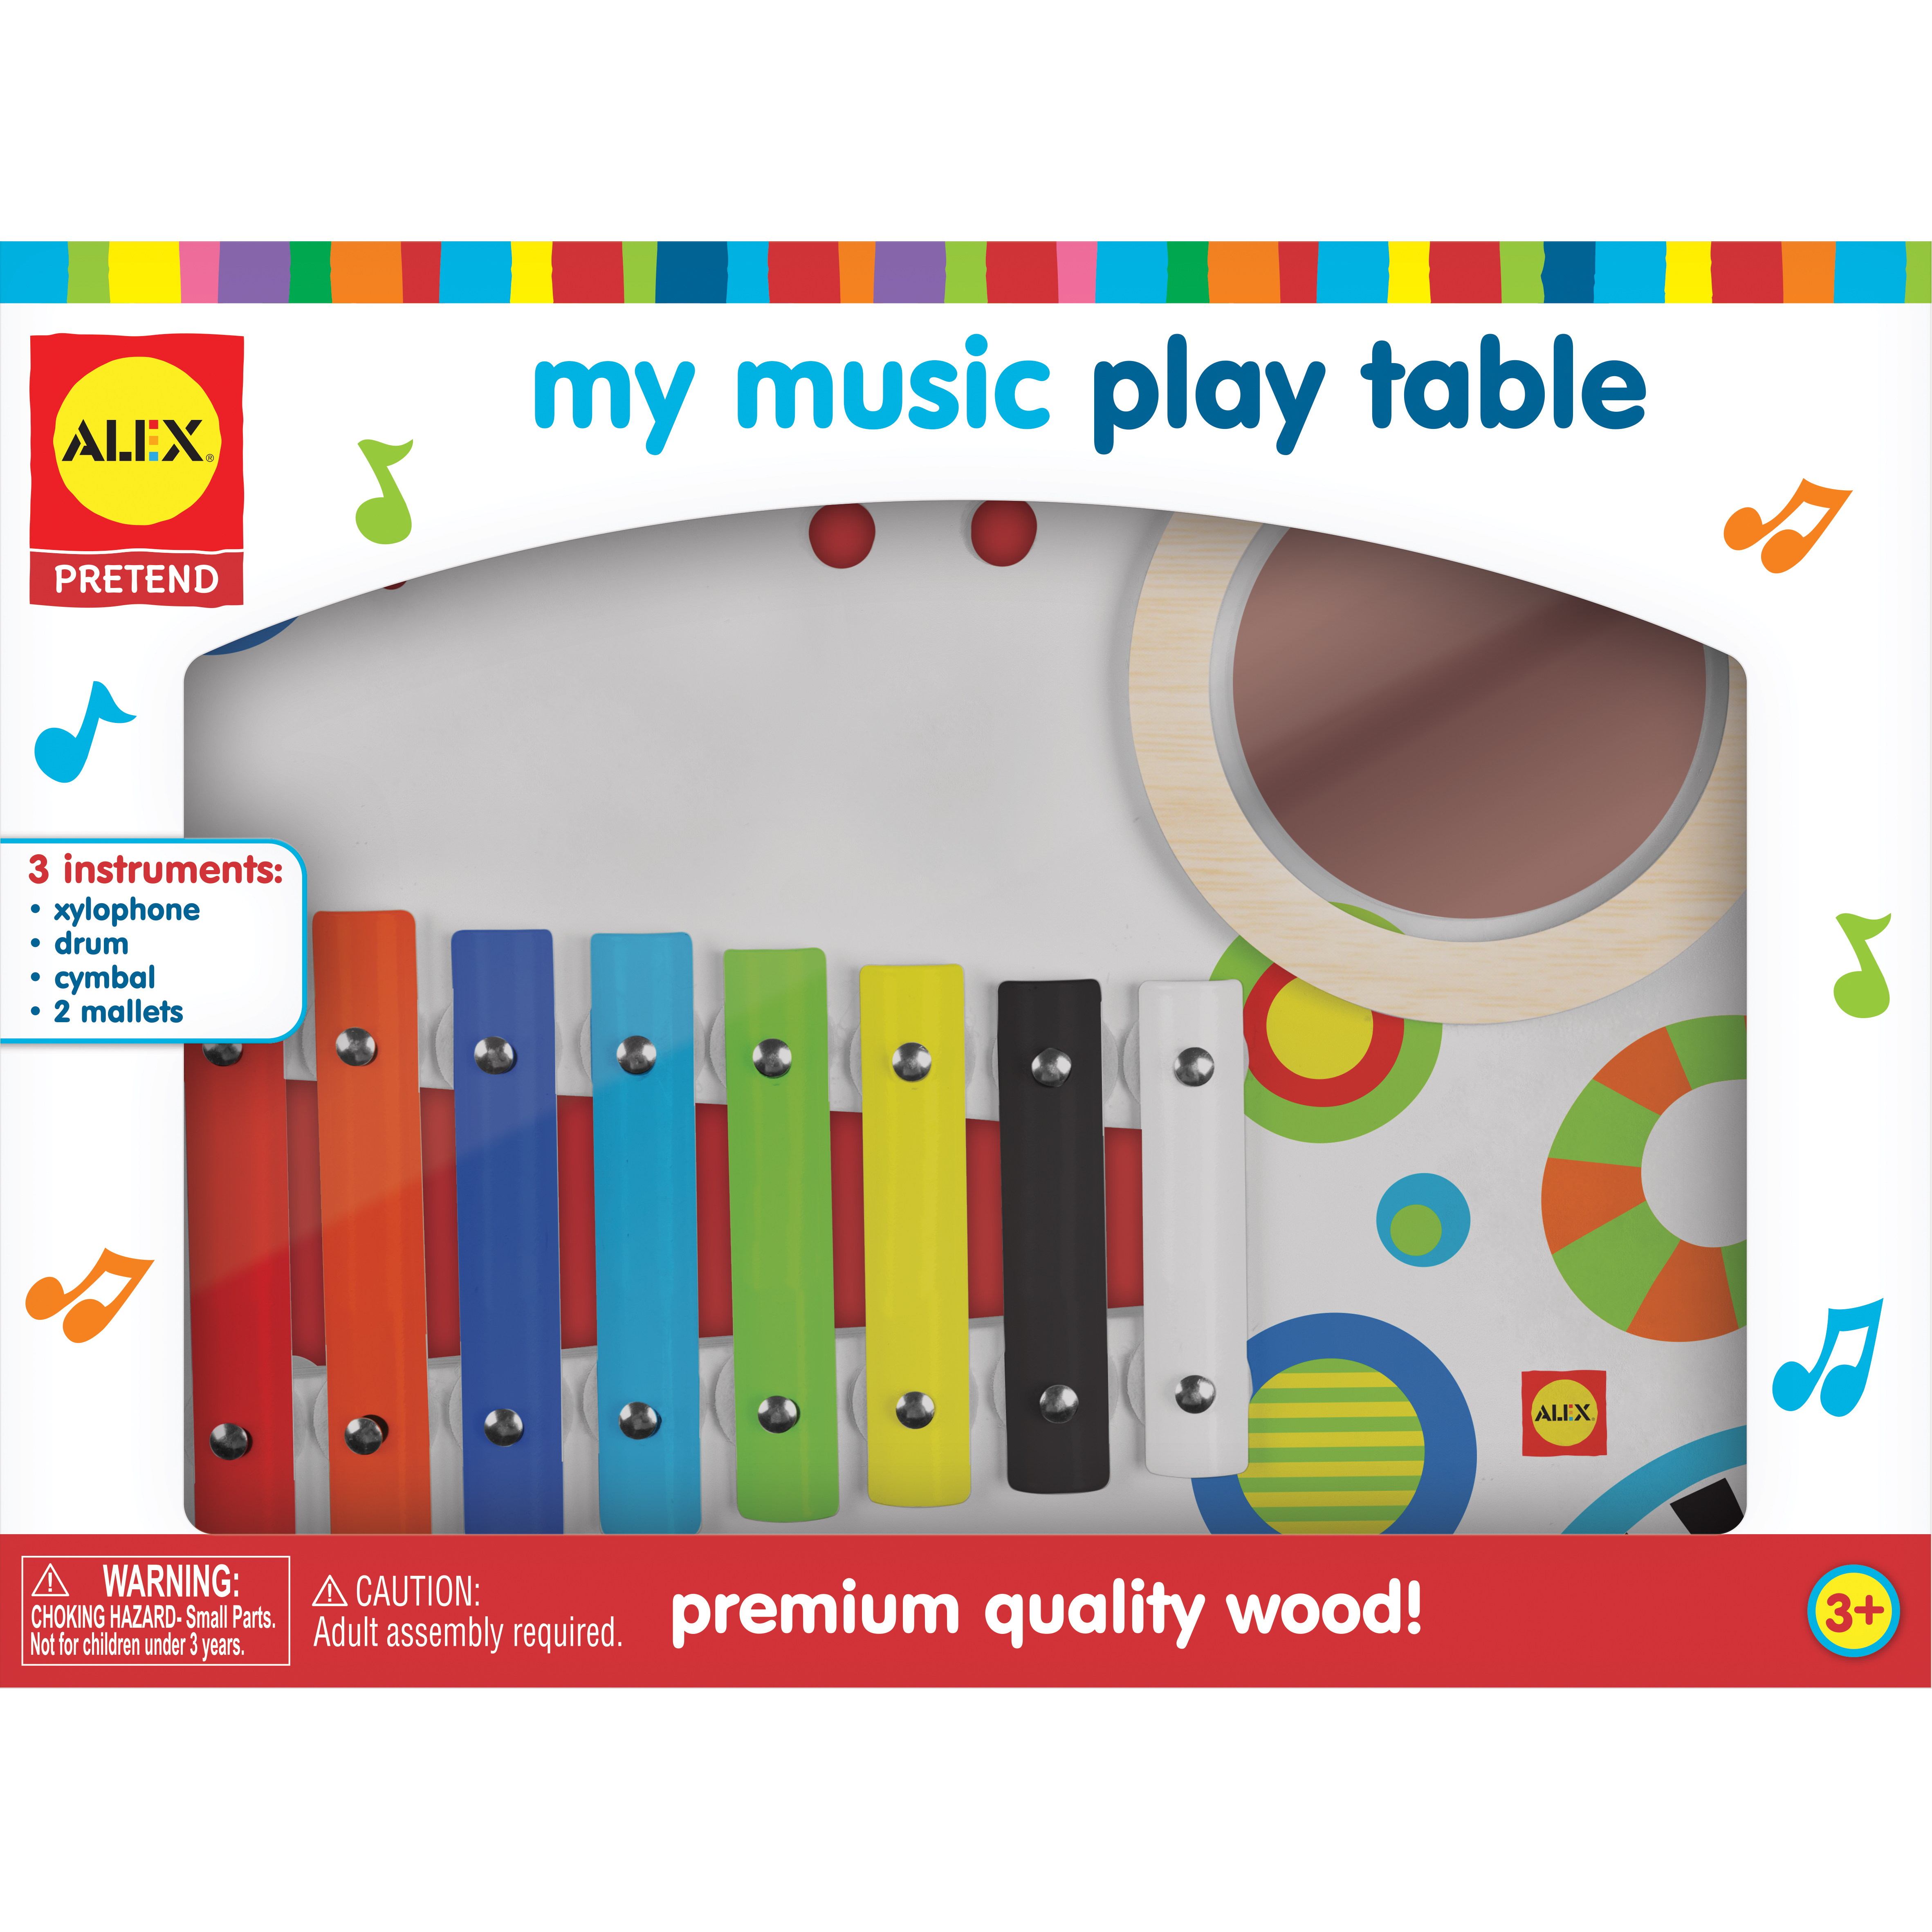 My Music Play Table by ALEX Brands